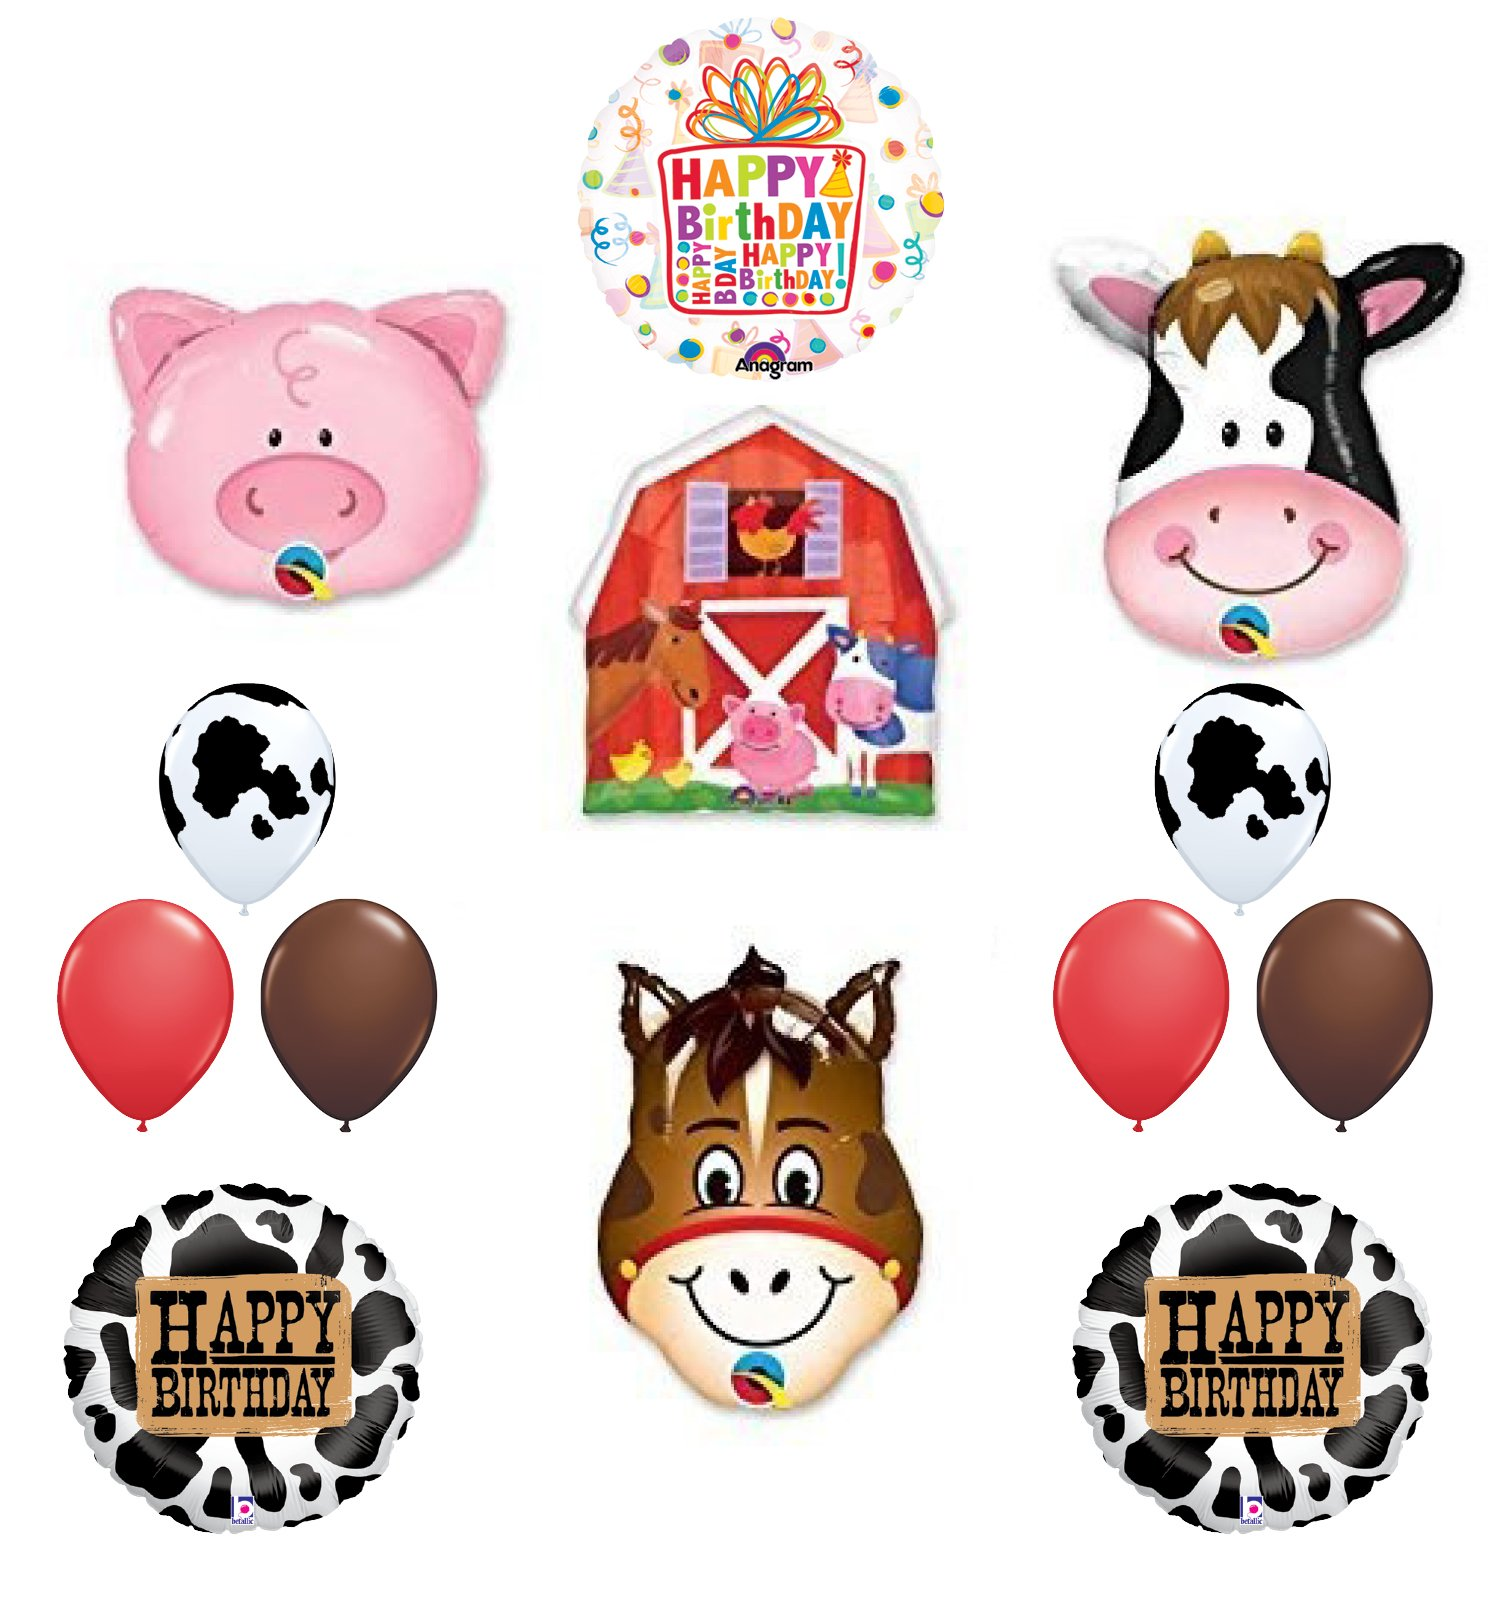 The ULTIMATE Barn Farm Animals Birthday Party Cow, Horse, Pig, Barn Balloons Decorations Supplies by Mayflower Products